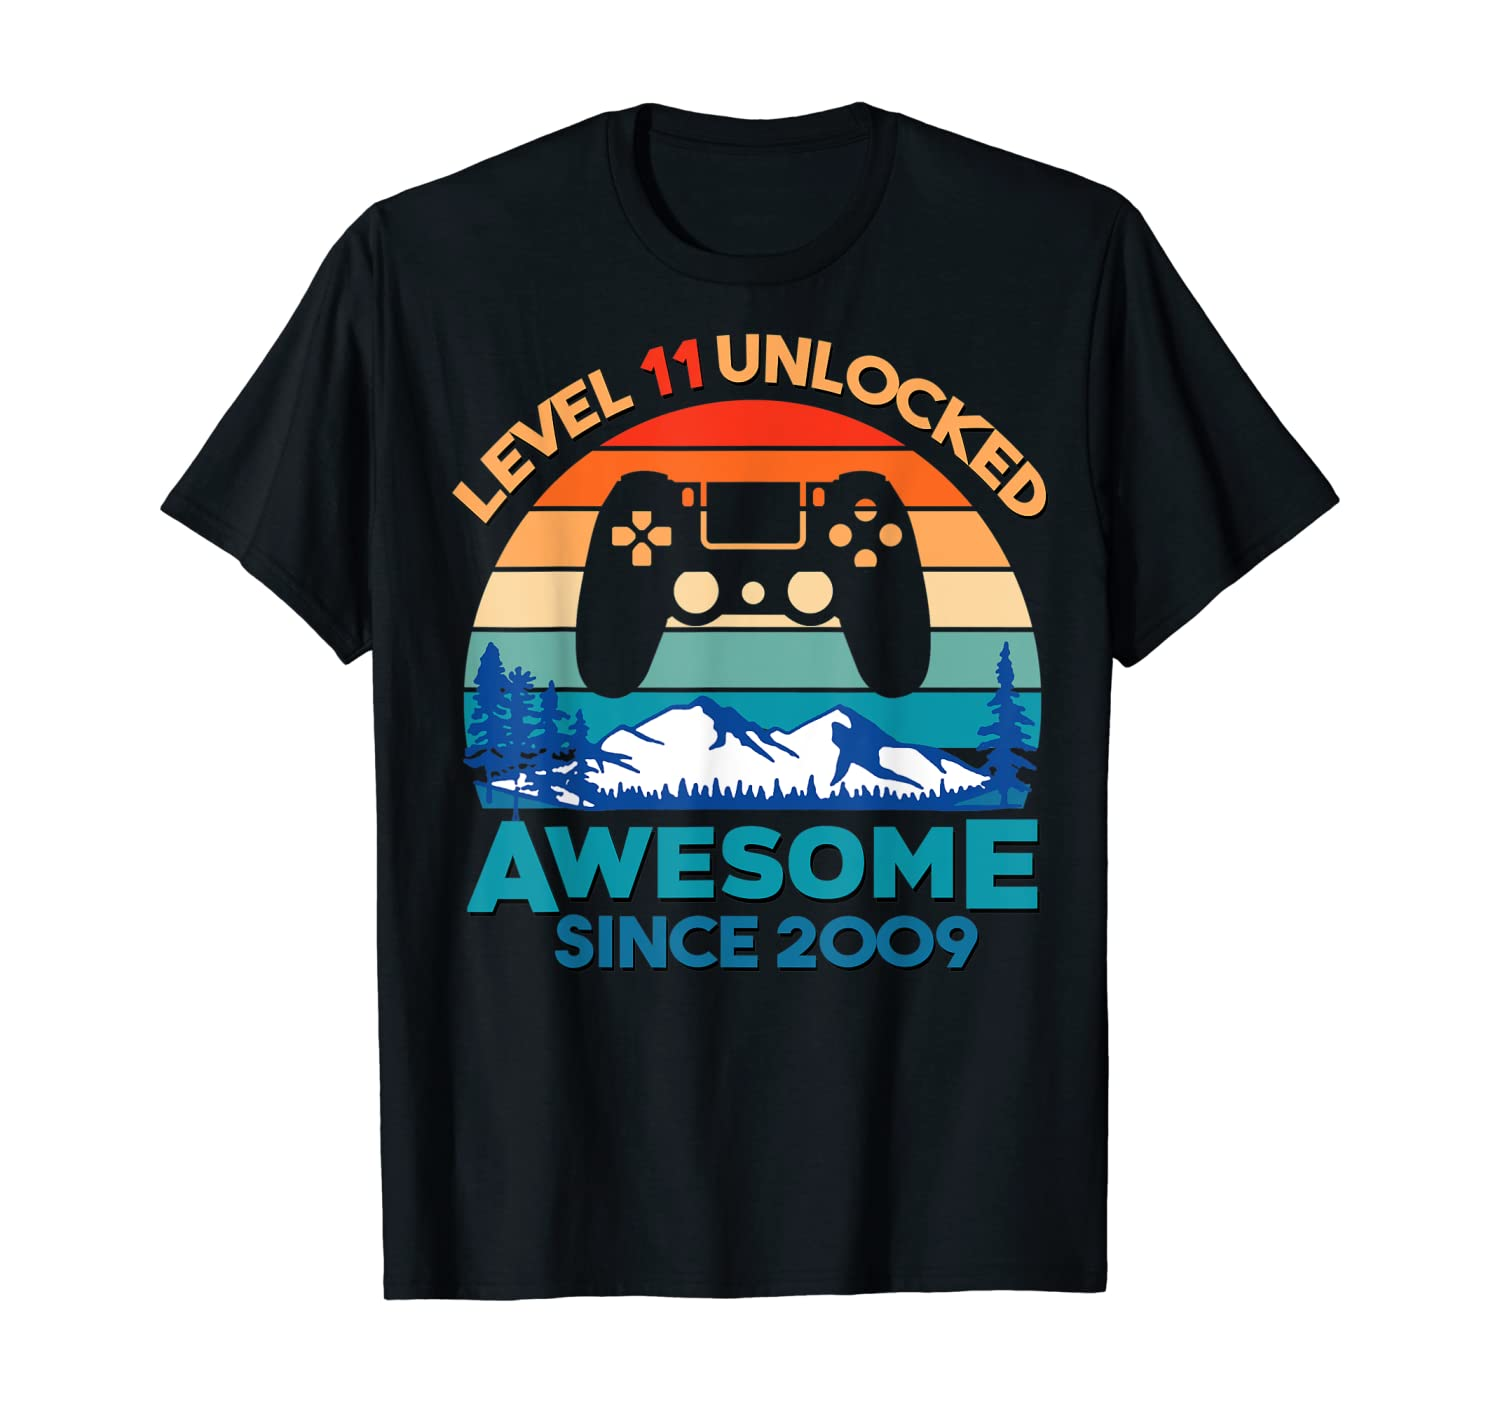 Level 11 Unlocked Birthday 11 Years Old Awesome Since 2009 T-Shirt